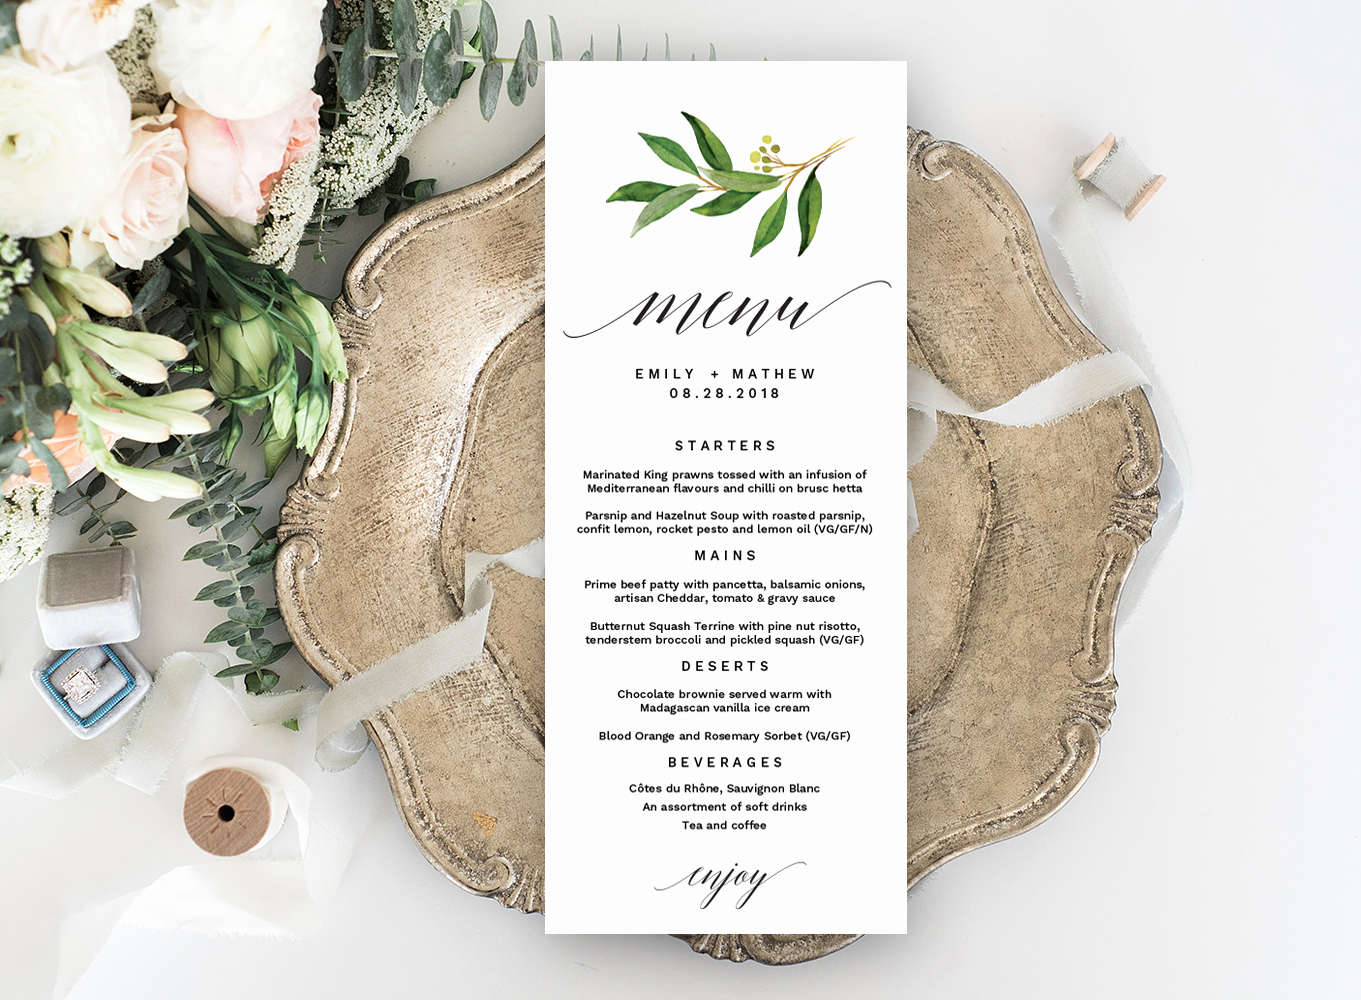 Wedding Menu Template Free Download Awesome Wedding Menu Editable Template – Free Print Templates